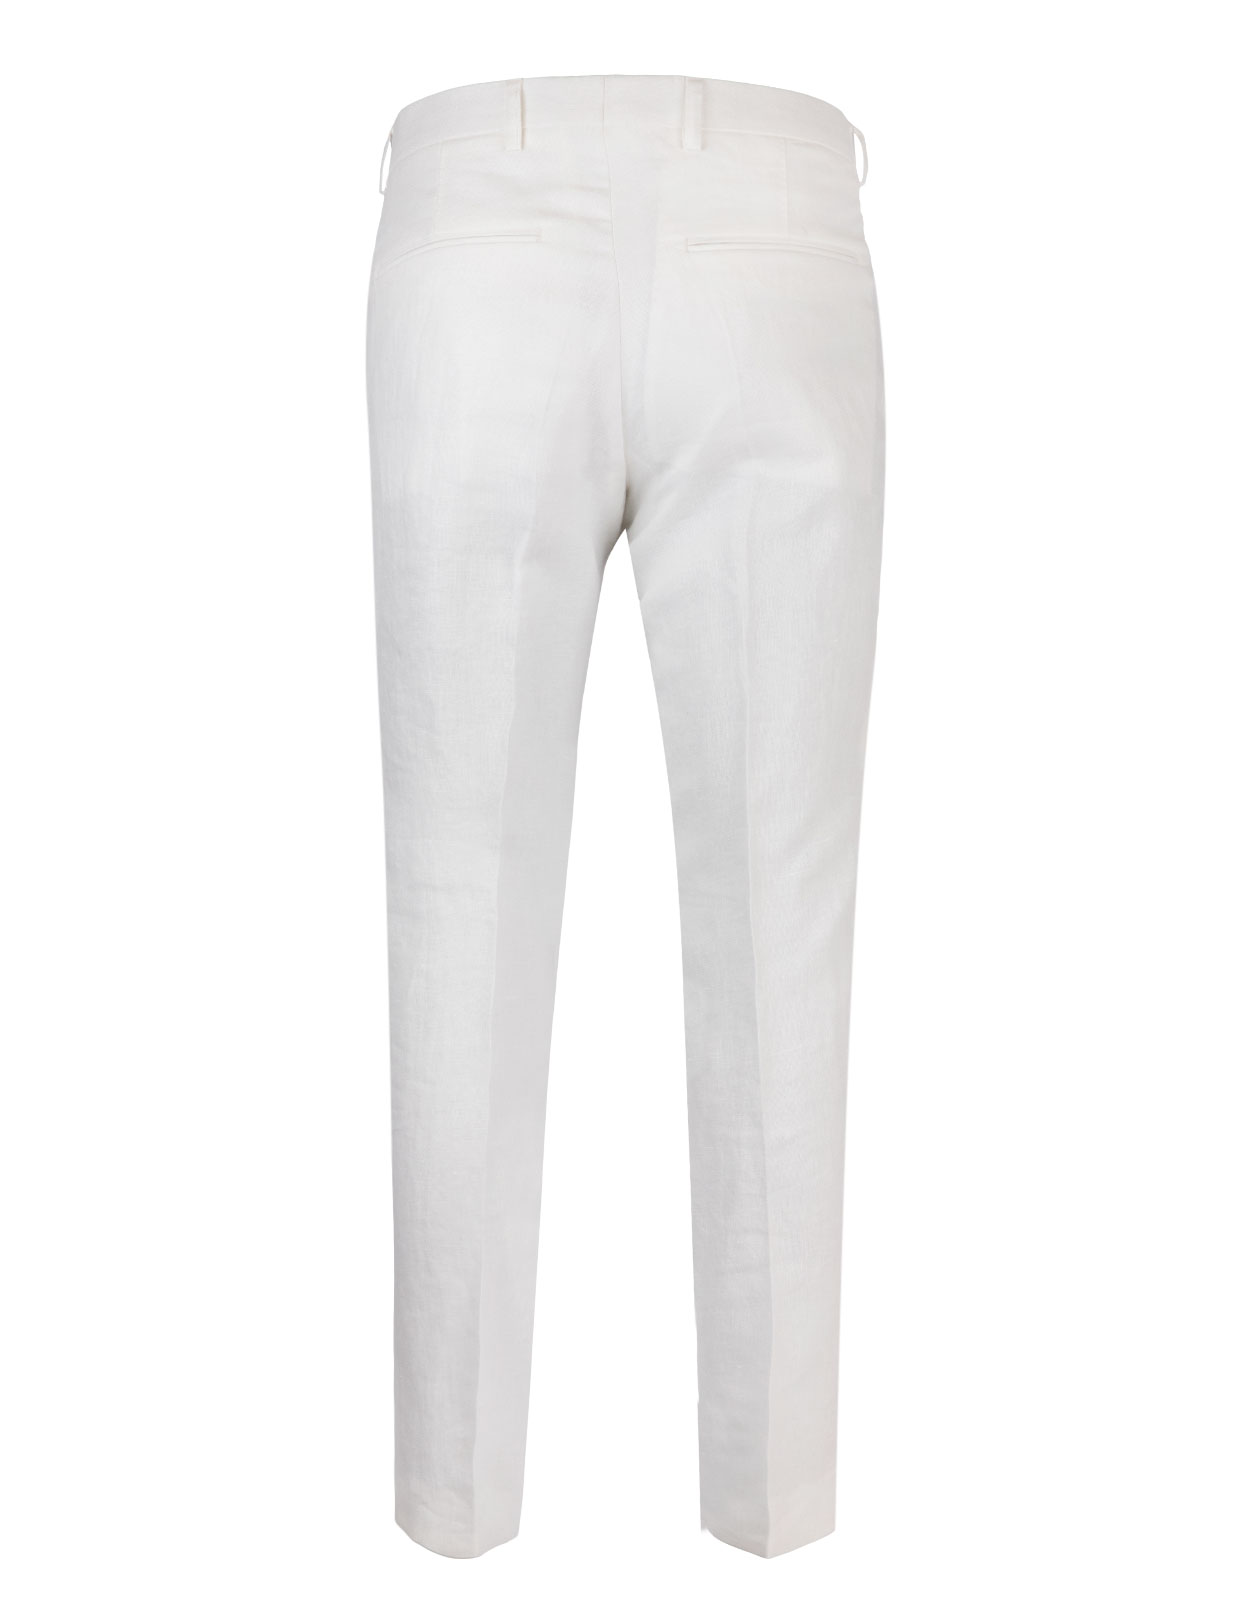 Diego Regular Fit Trouser Mix & Match White Stl 52